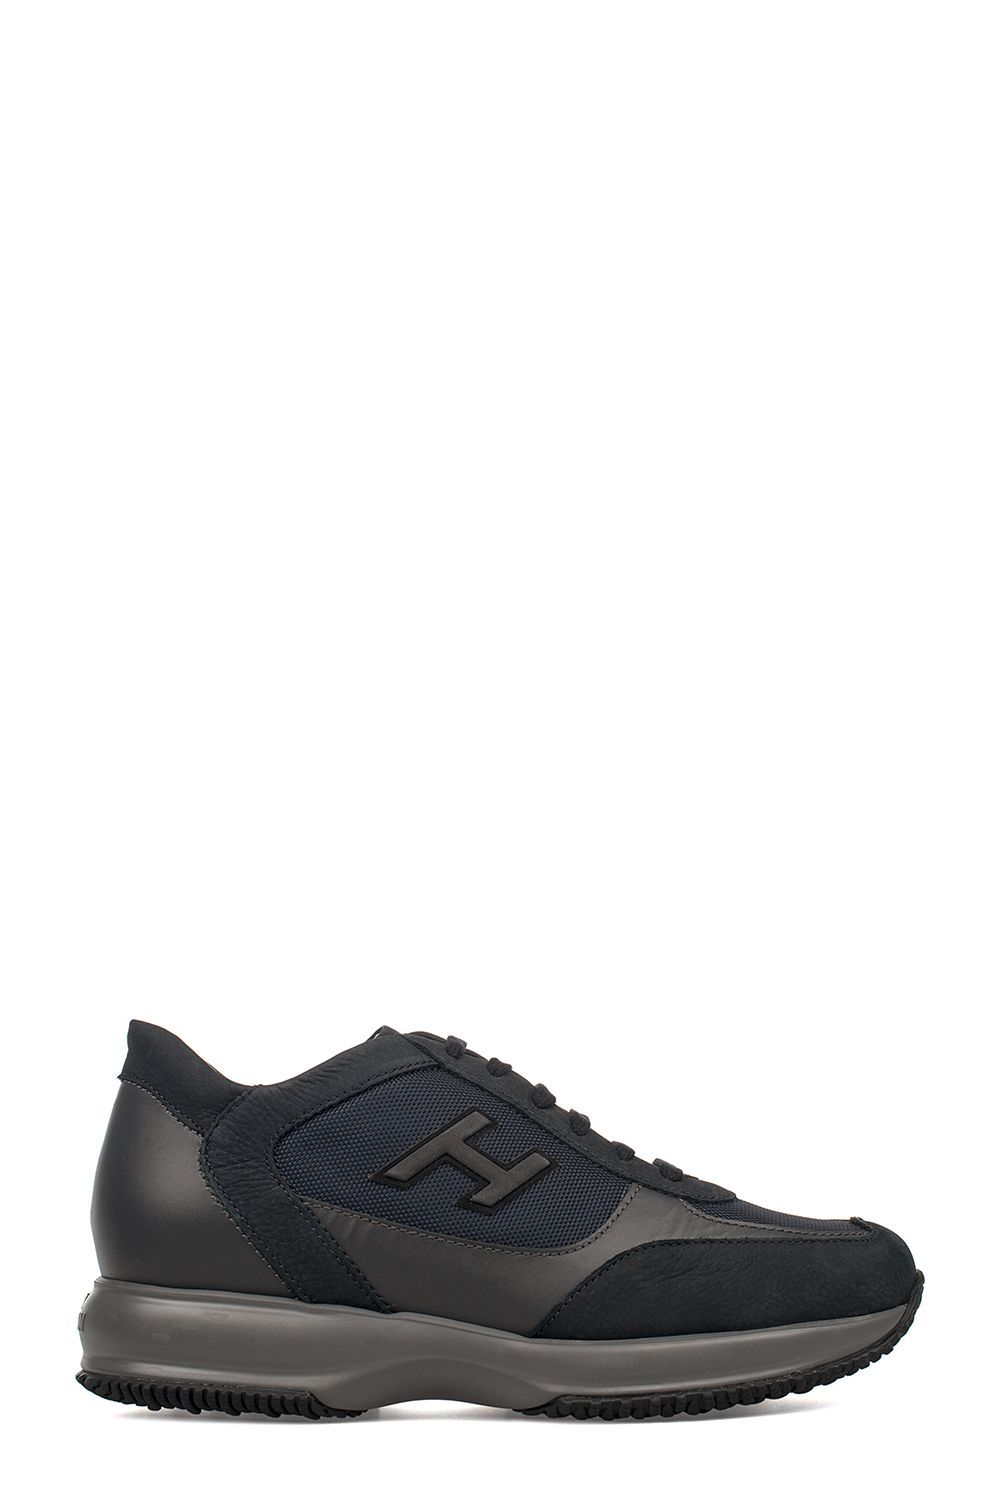 1e981380b78 HOGAN BLUE-GRAY NEW INTERACTIVE SUEDE SNEAKERS. #hogan #shoes ...